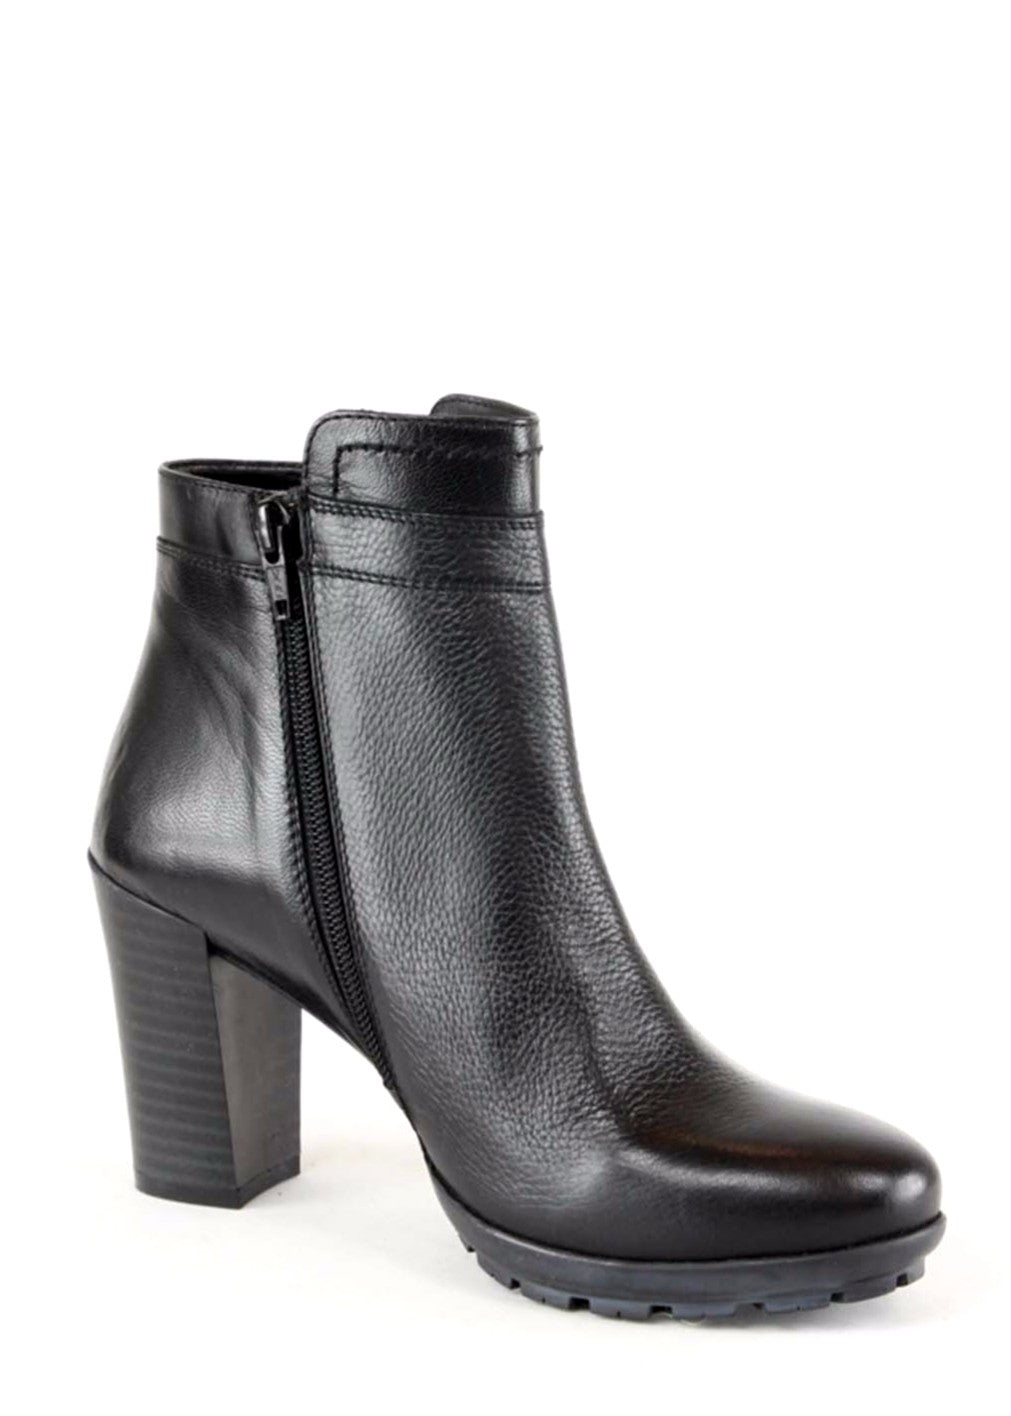 EVA - Leather Ankle Boots -SOLD OUT